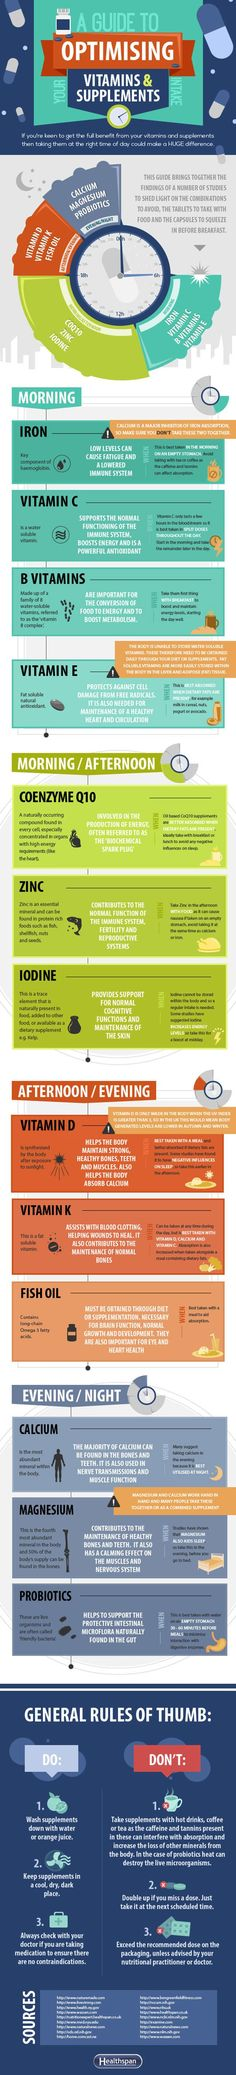 HEALTHY LIFESTYLE - A Guide To Optimising Your Vitamins And Supplements Infographic. http://www.ahealthblog.com/a-guide-to-optimising-your-vitamins-and-supplements-infographic.html #Natural #Remedies Pin/Source -